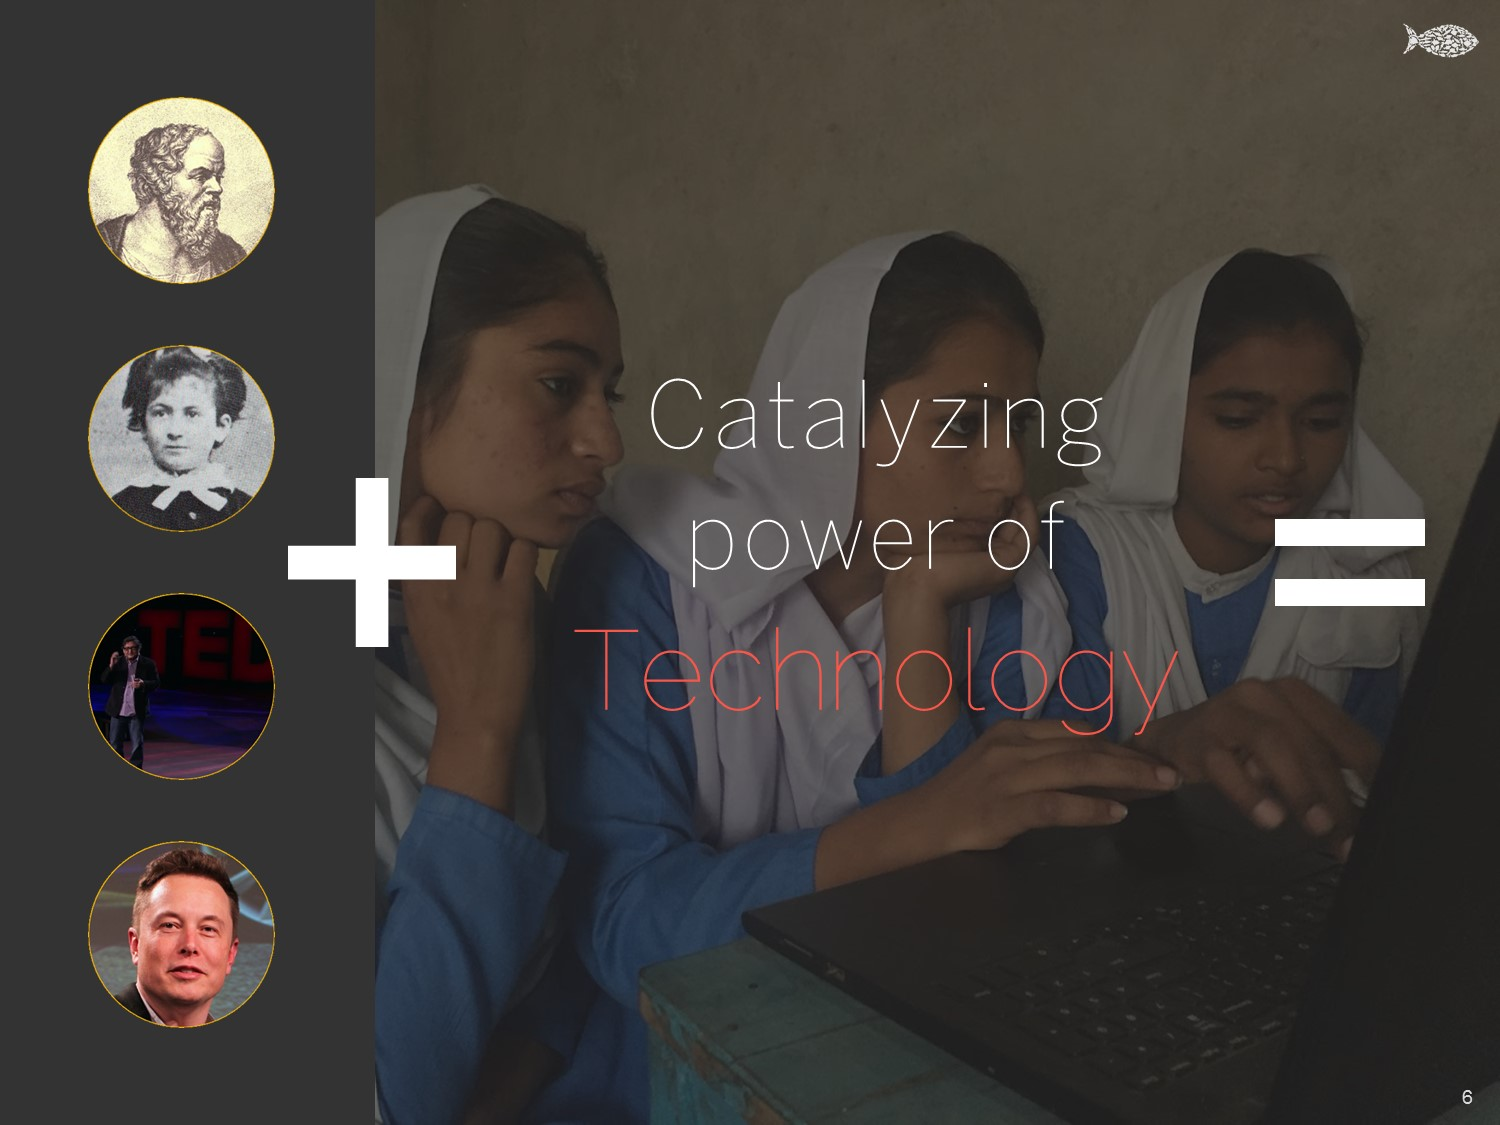 Catalyzing power of Technology  - Khud EdTech Pakistan